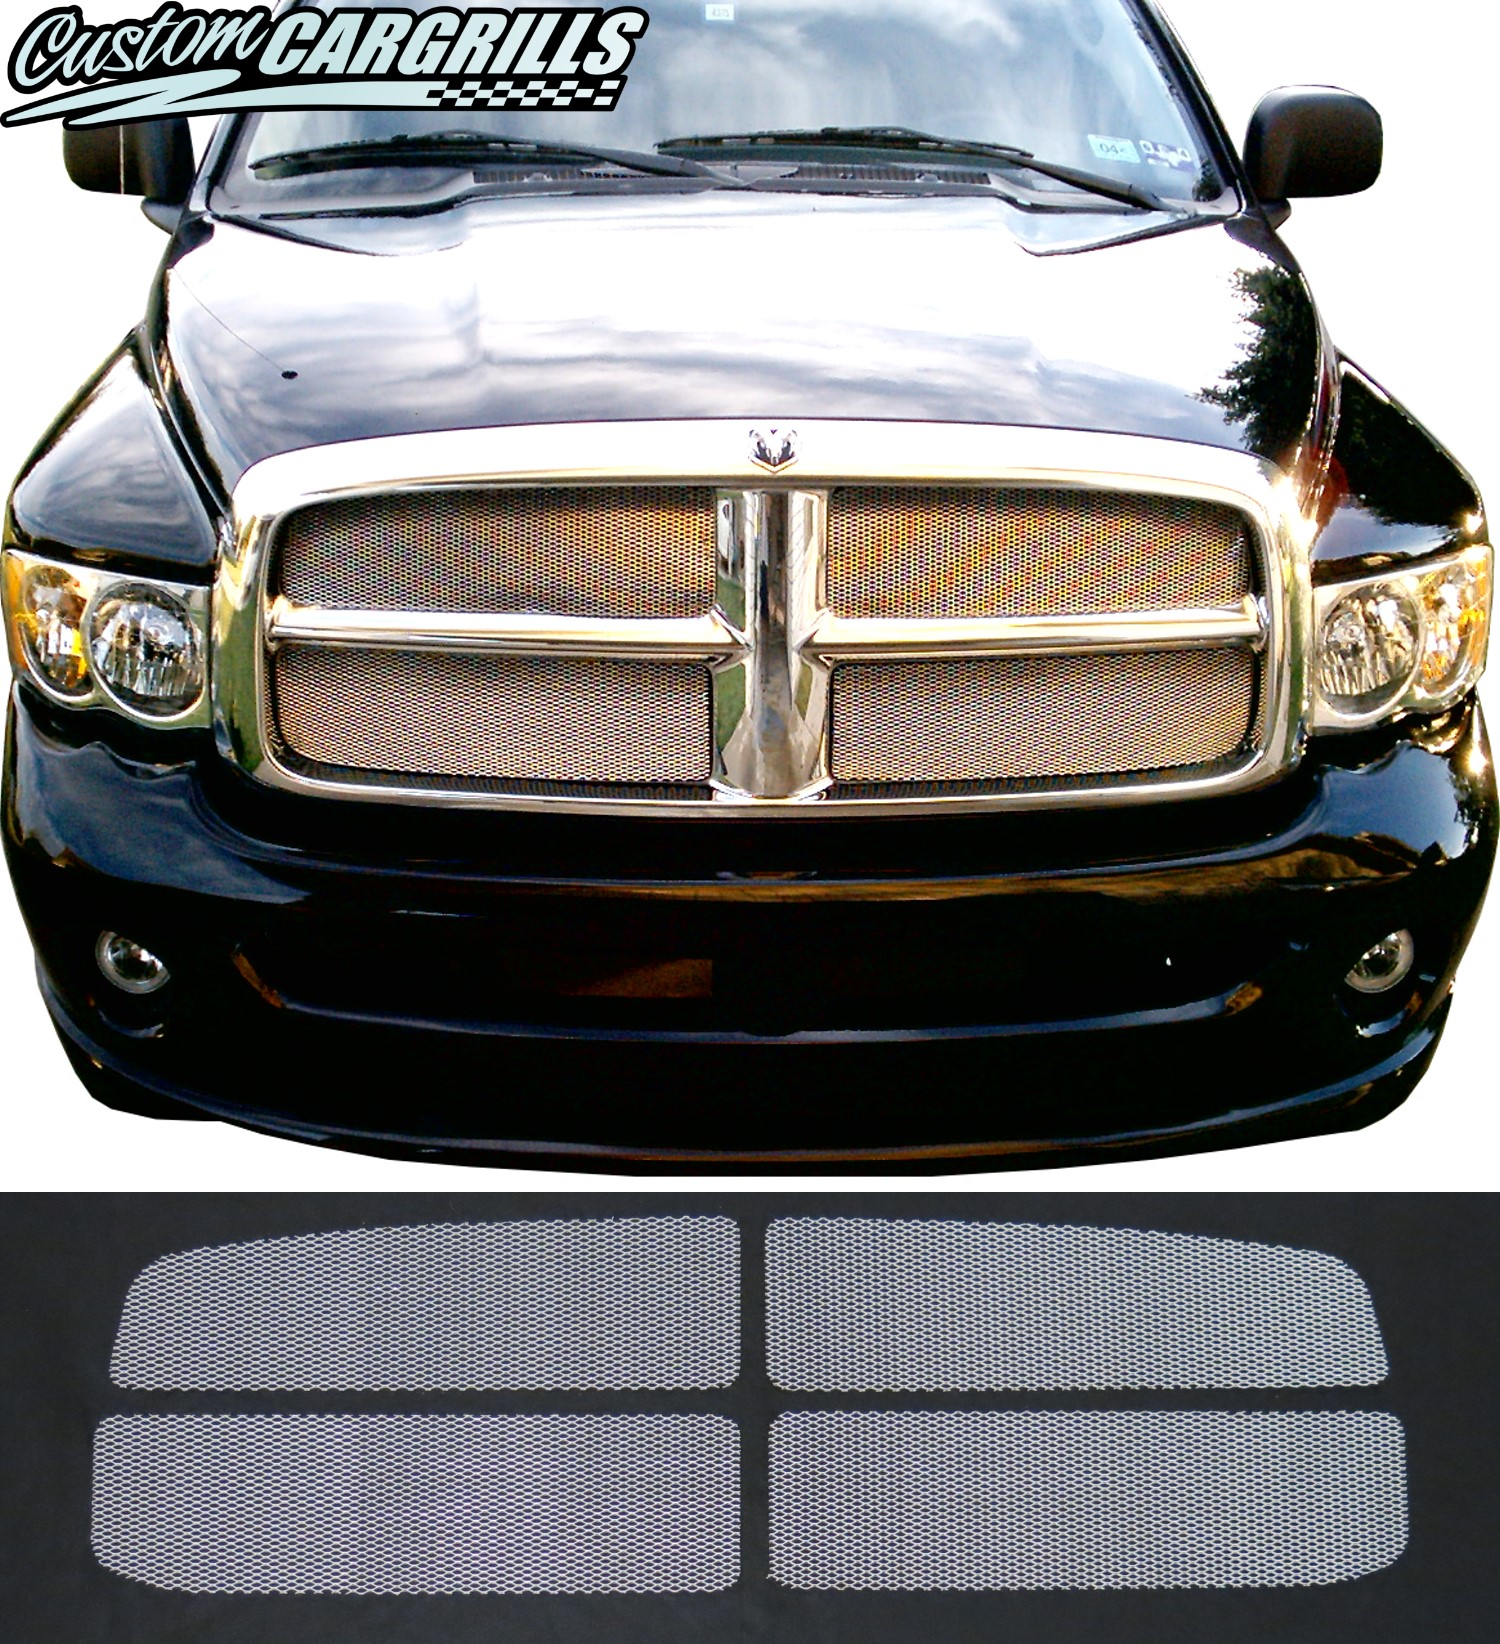 2002 - 2005 Dodge Ram Mesh Grill Kit